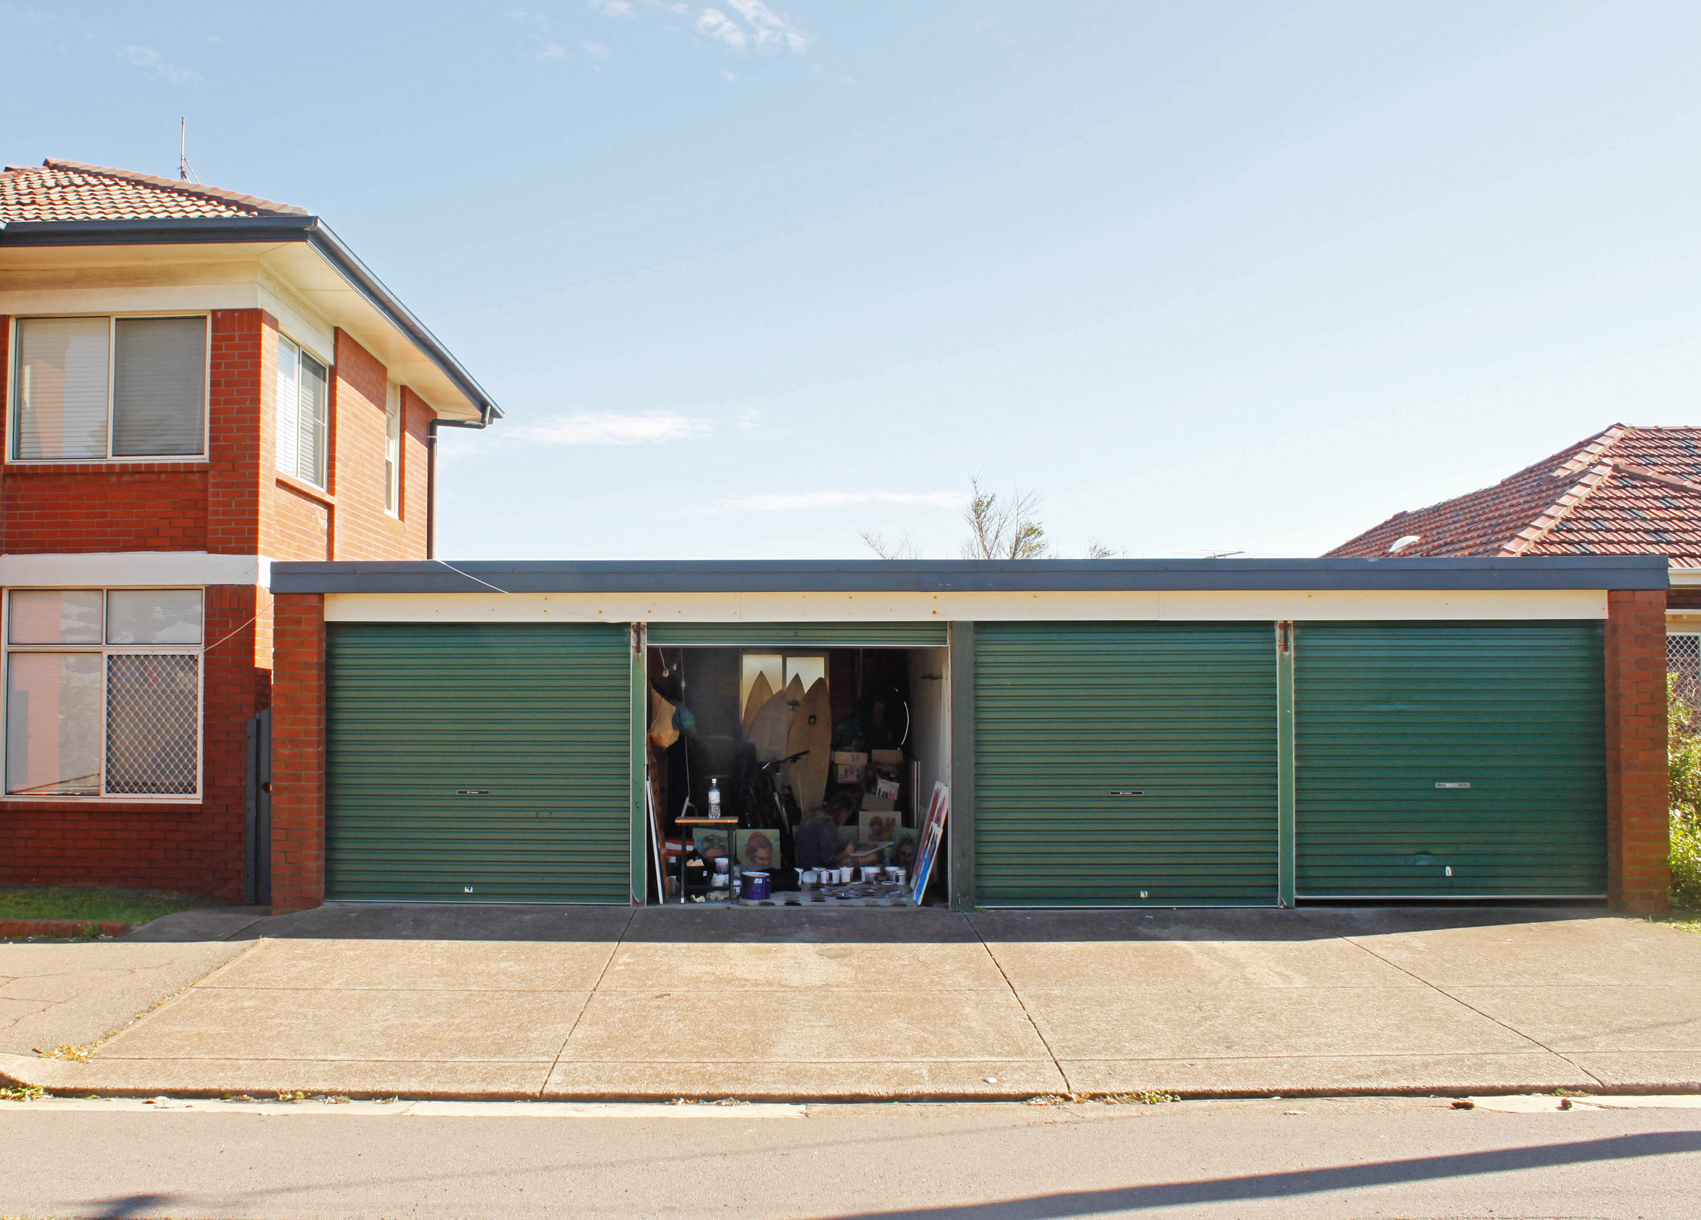 Australian Artist studio visit - Alex Ball (Umpel), The Corner Store Gallery, Photograph by Madeline Young